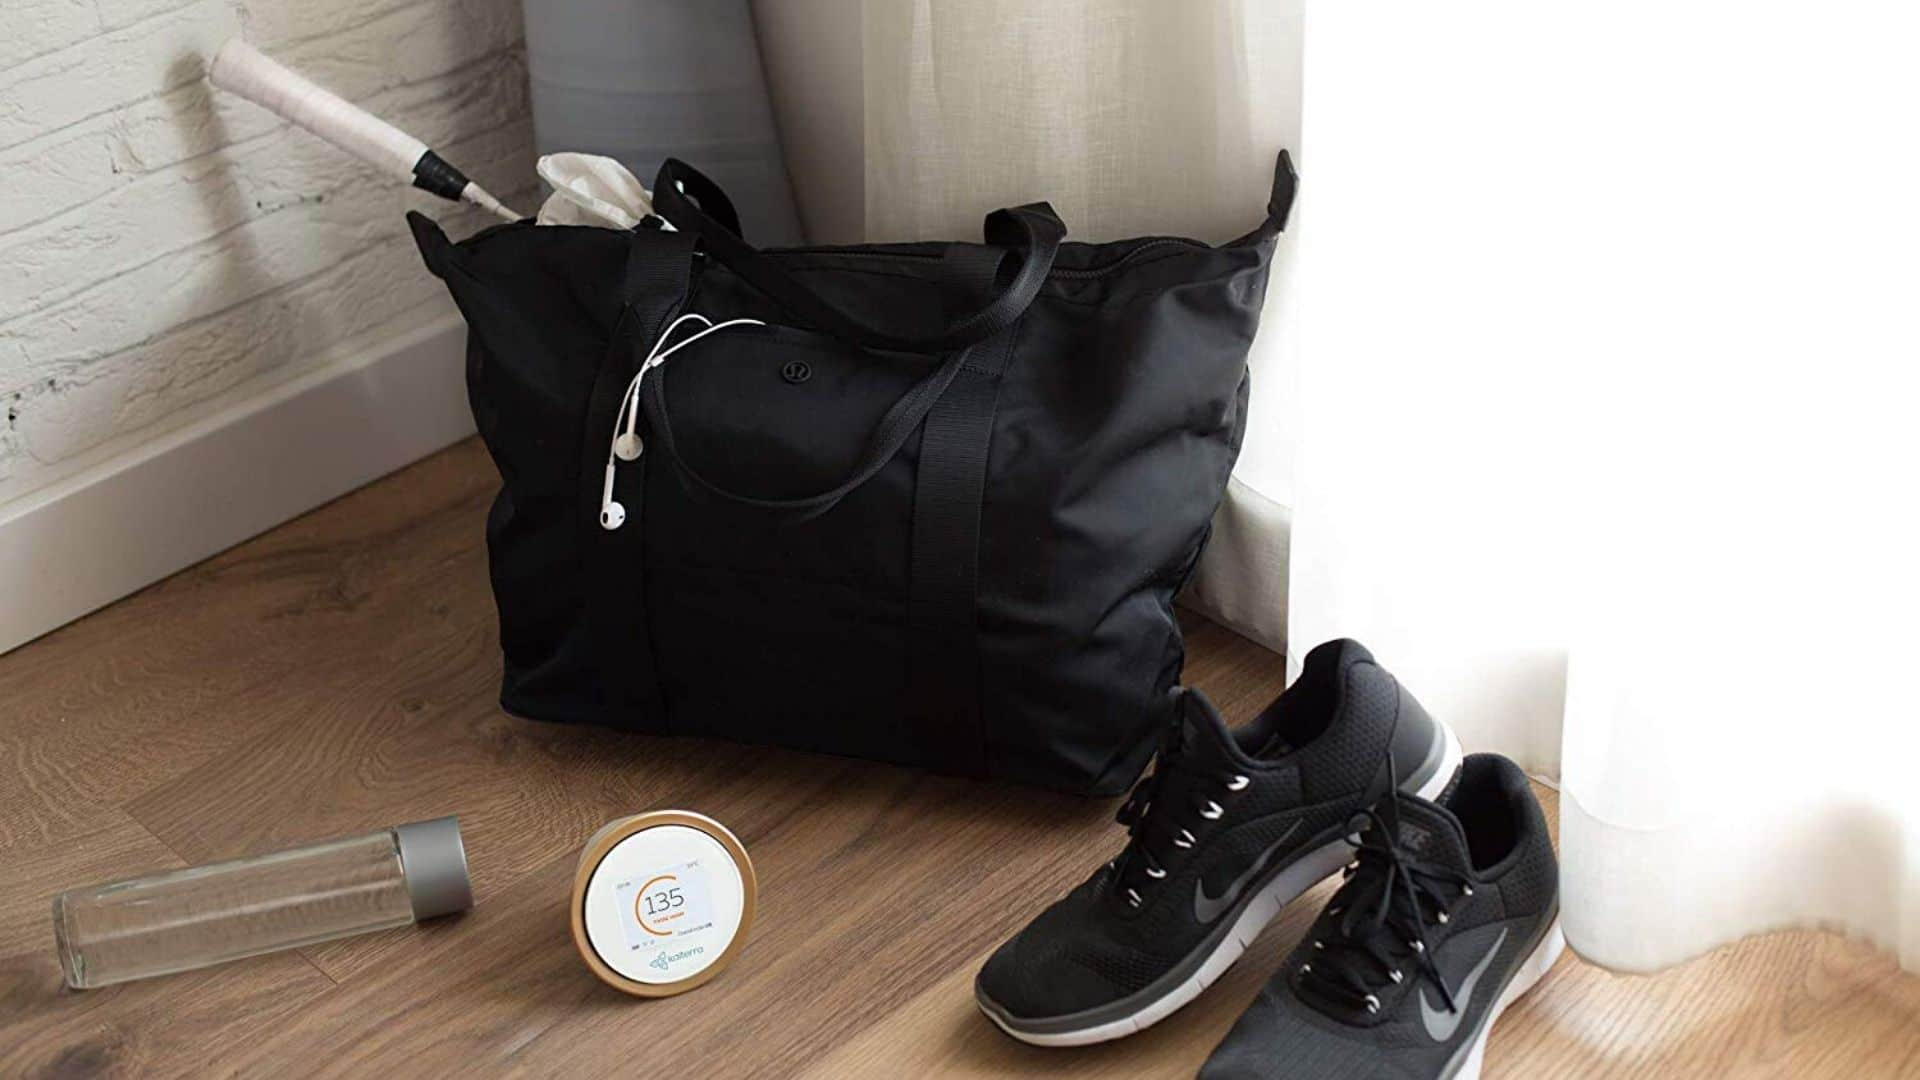 Picture of Kaiterra Laser Egg+ Chemical: Indoor Air Quality Monitor beside black gym bag and shoes